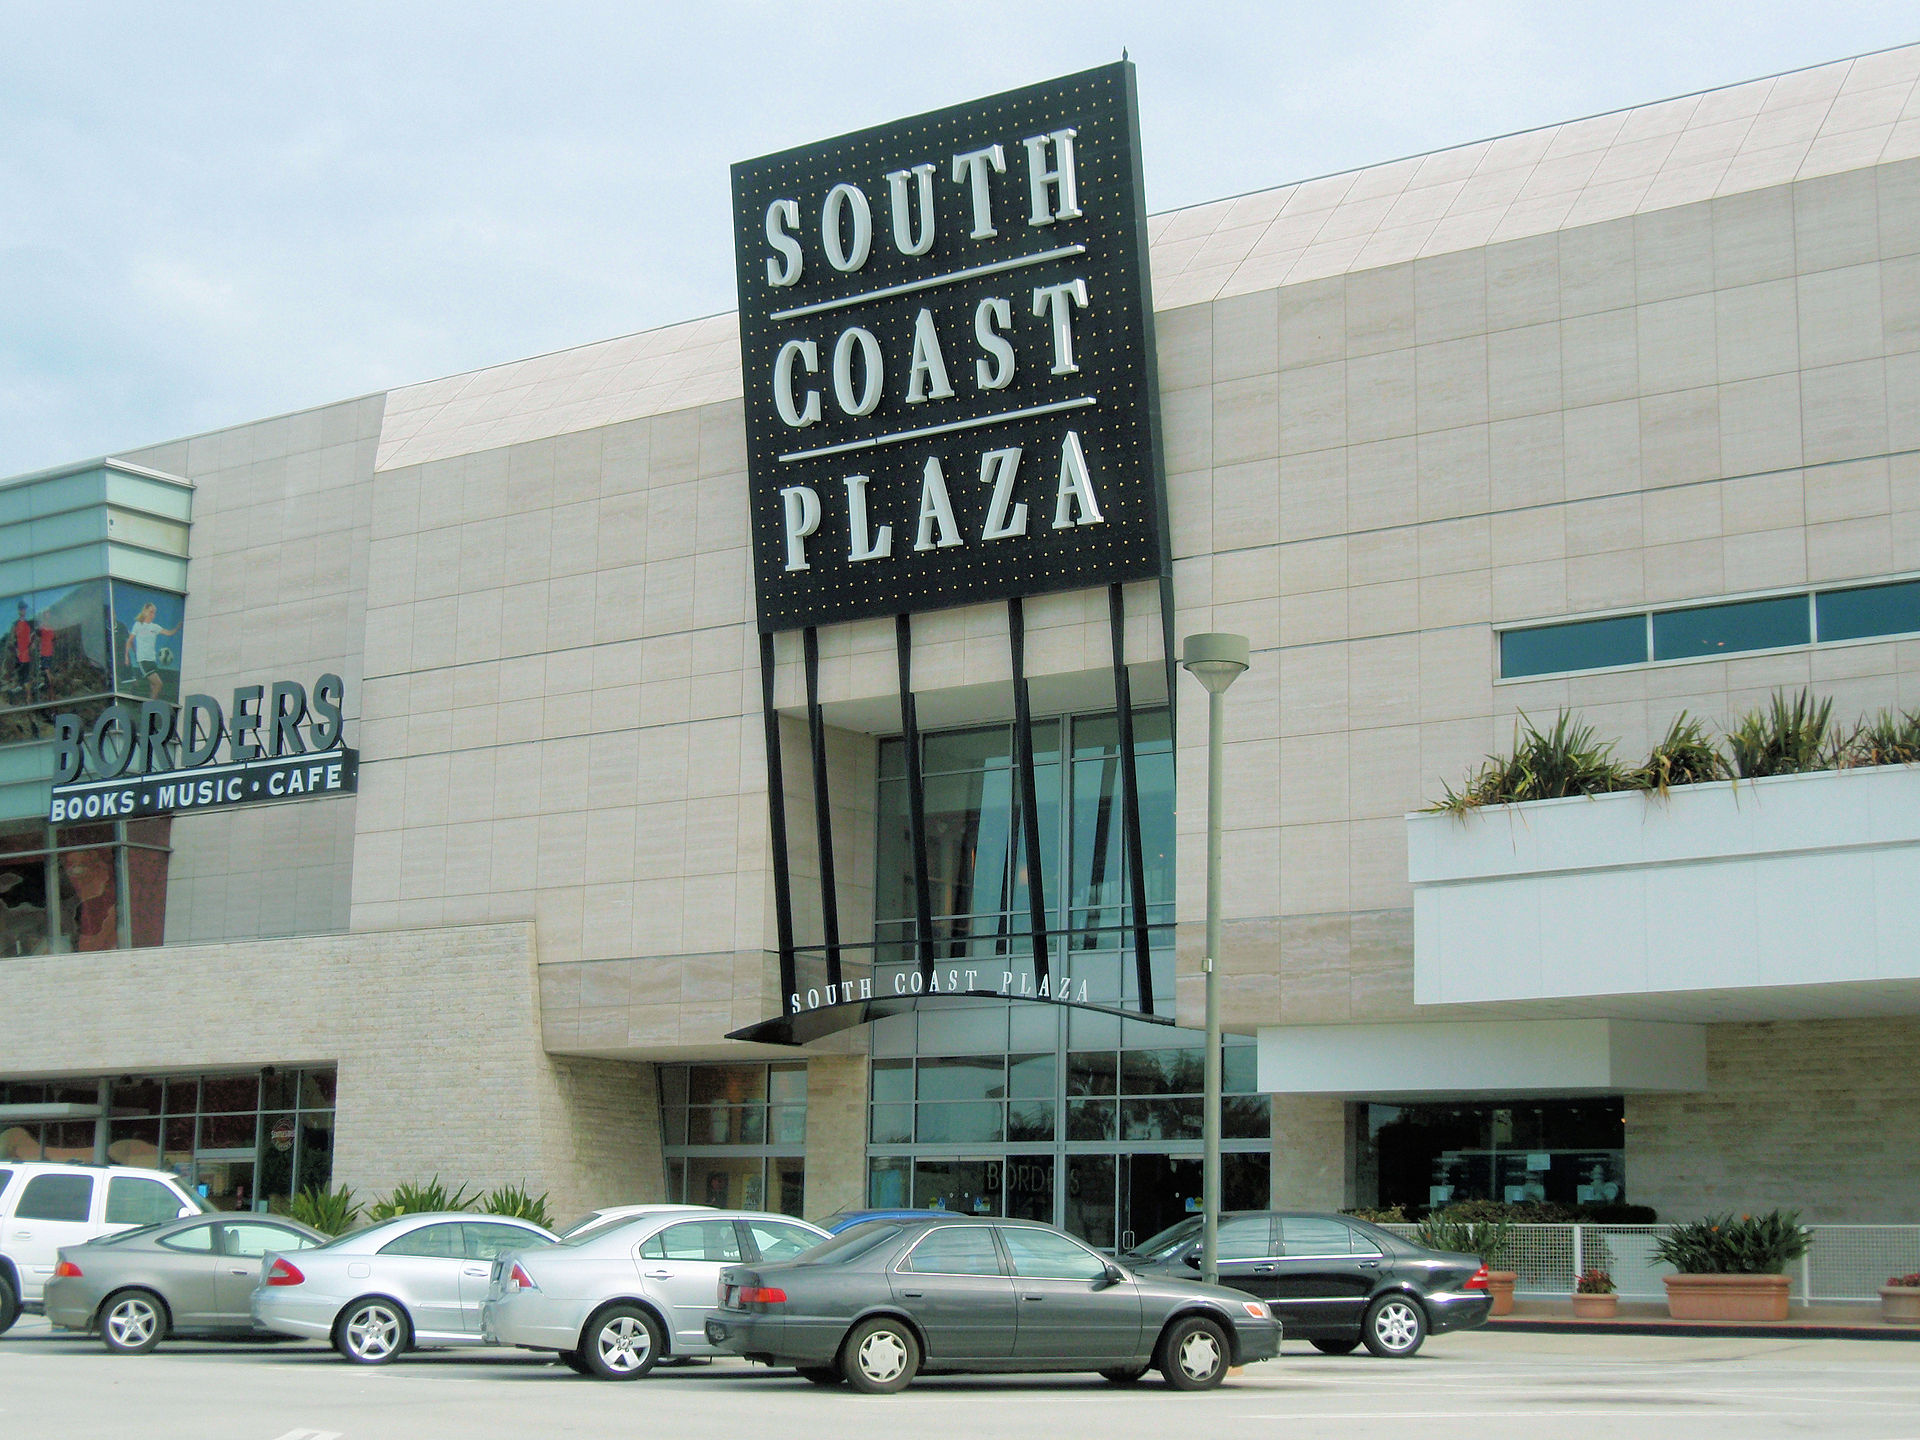 South Coast Plaza's unparalleled collection of boutiques, department stores and award-winning restaurants, many of which are exclusive to California, attract visitors from around the world. South Coast Plaza's reputation as one of the nation's premier shopping destinations for fashion, design and dining grows stronger every year.